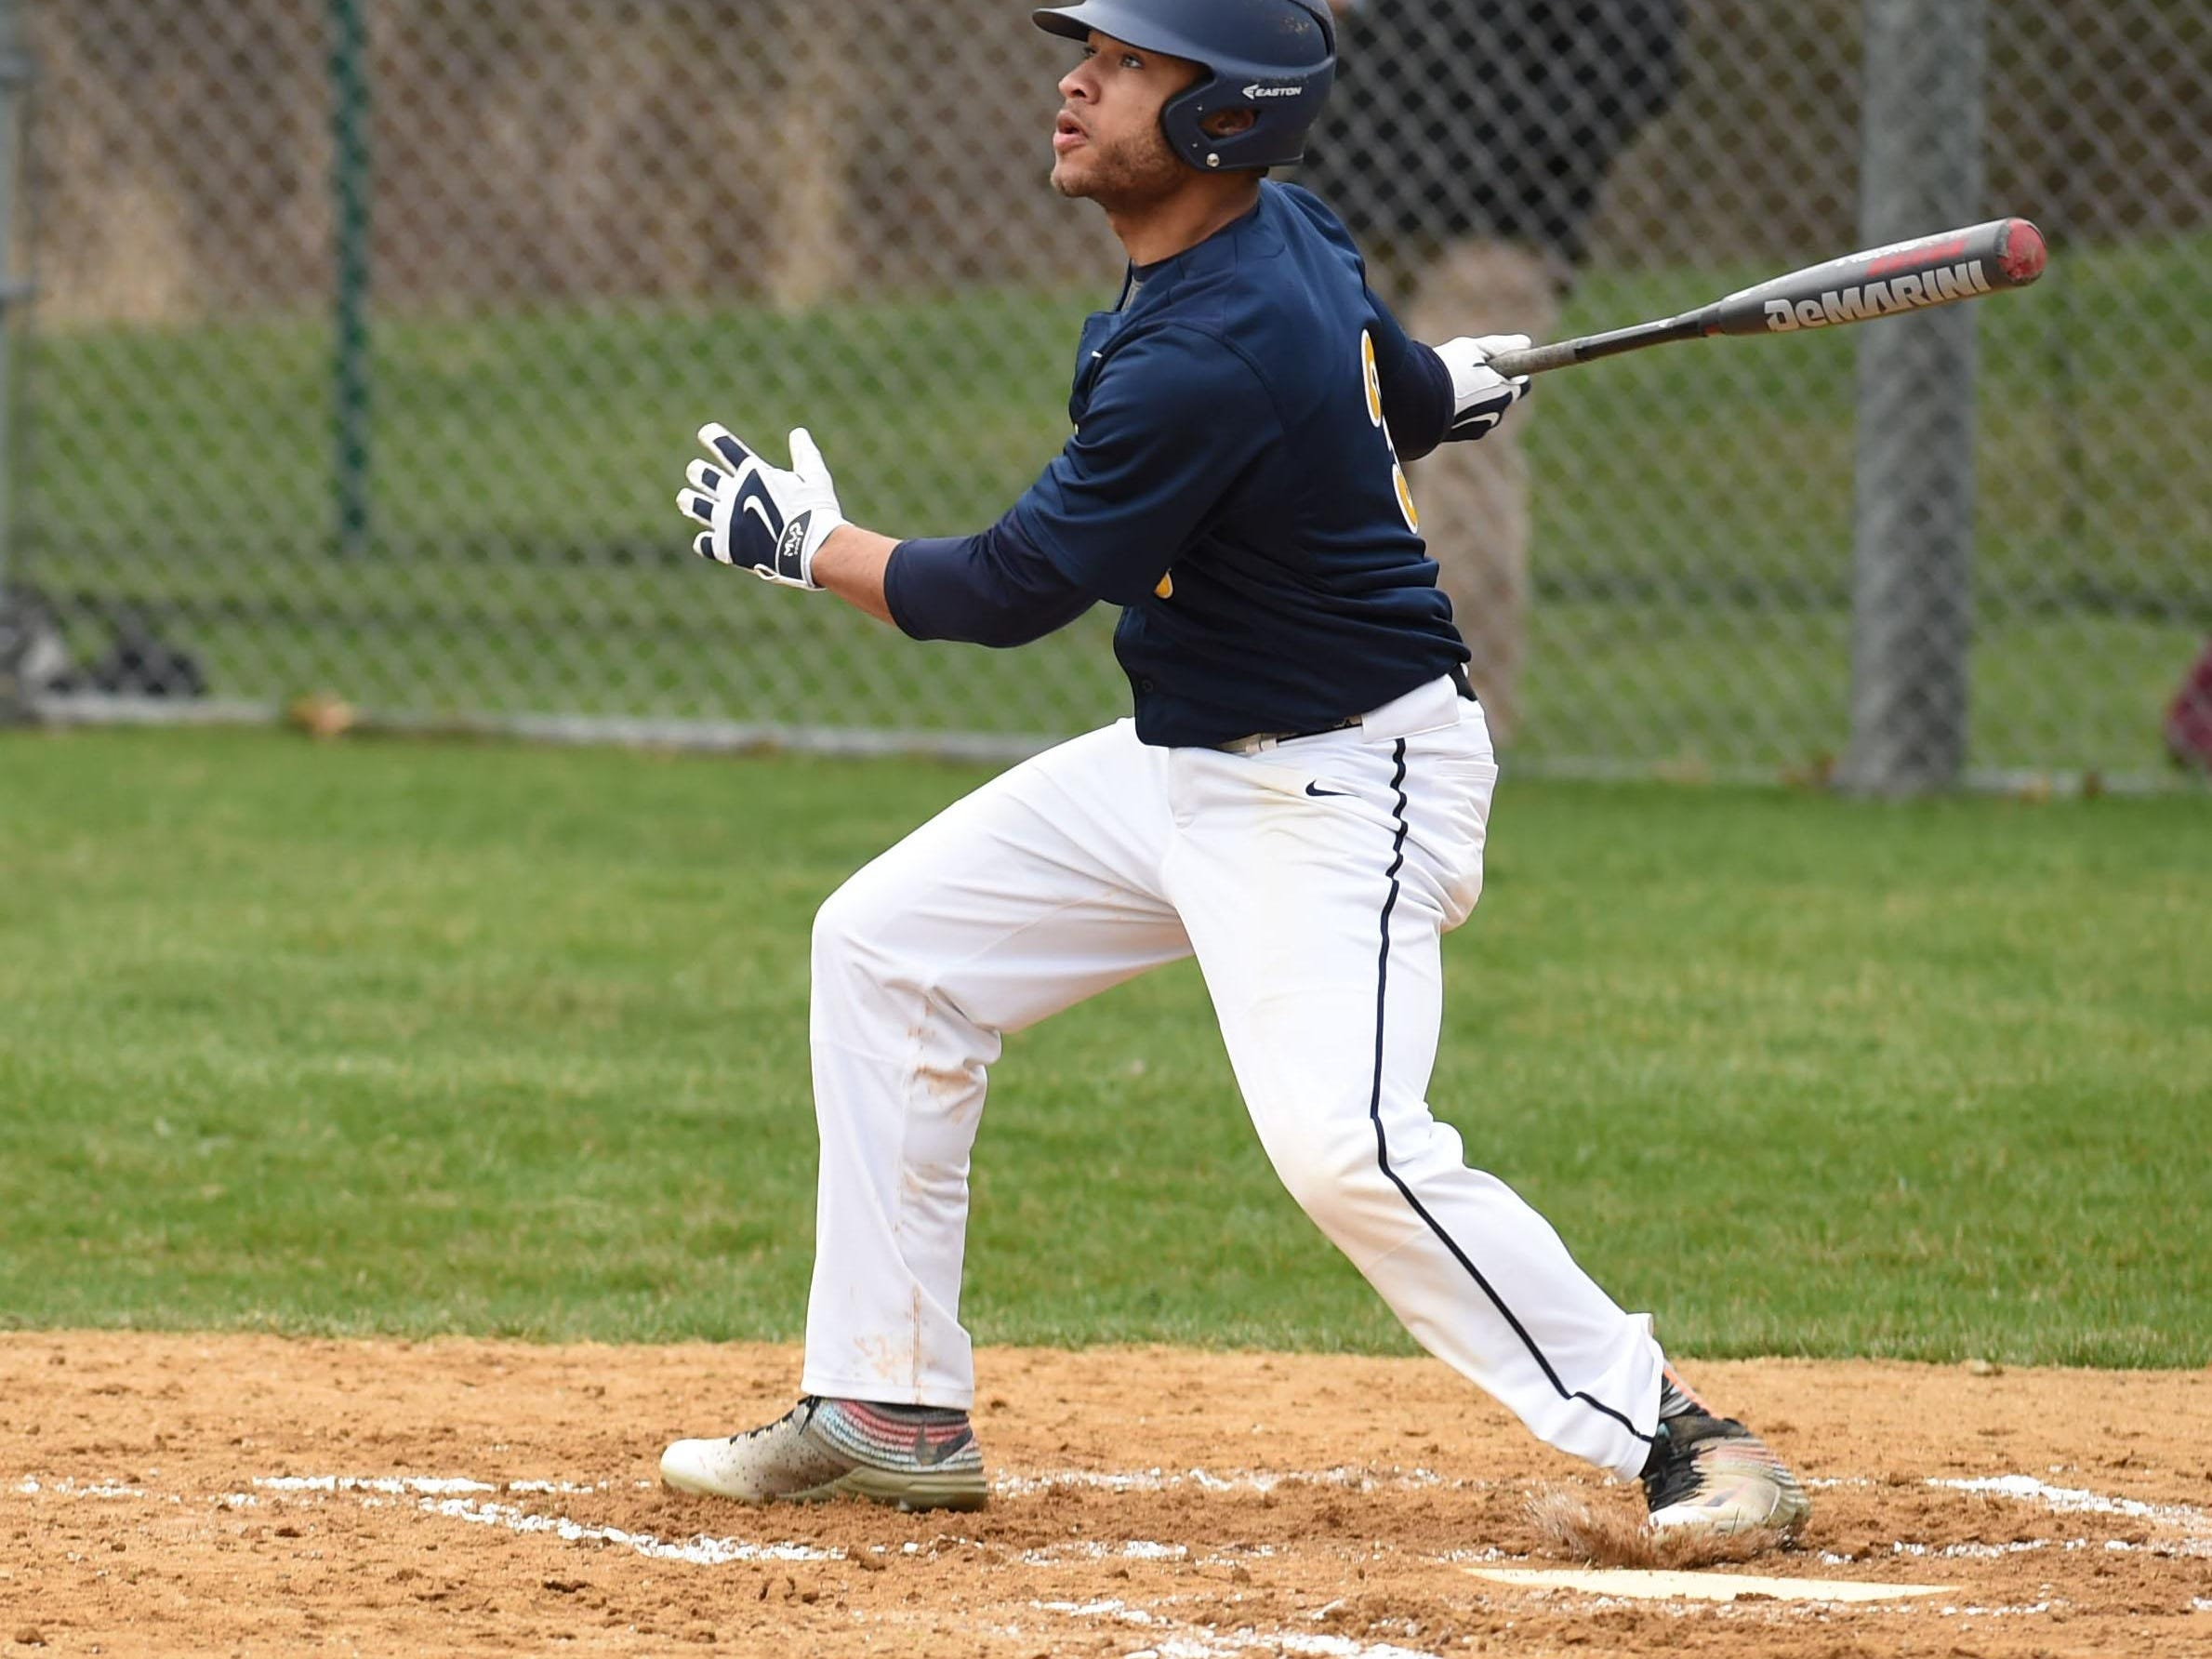 Highland's Isiah Daubon hits a fly ball during Monday's game against New Paltz.